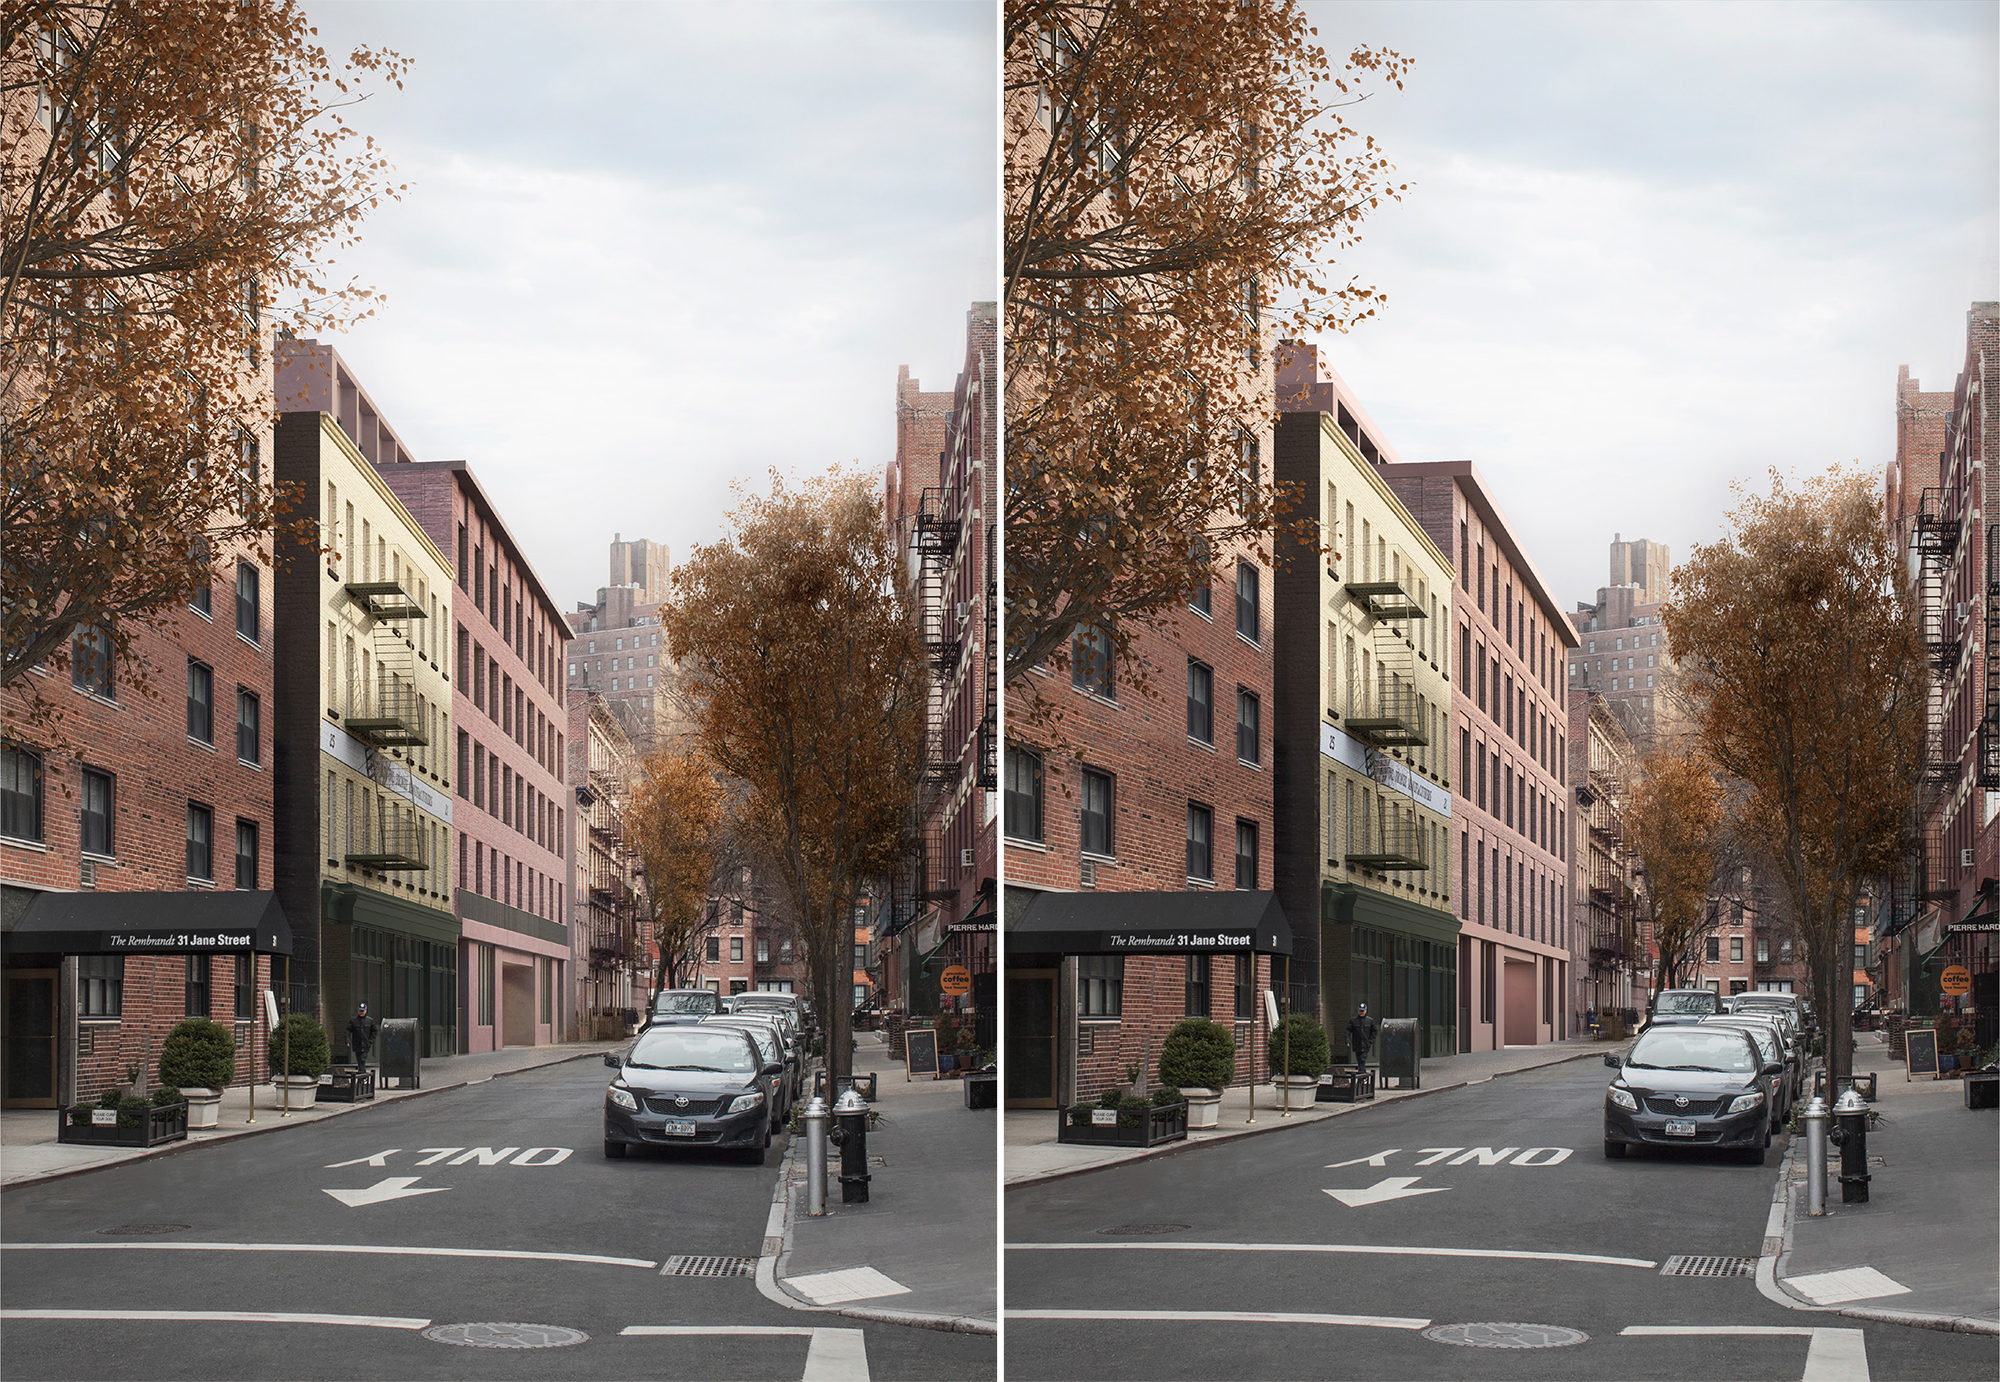 January proposal (left) and February proposal (right) for 11-19 Jane Street.